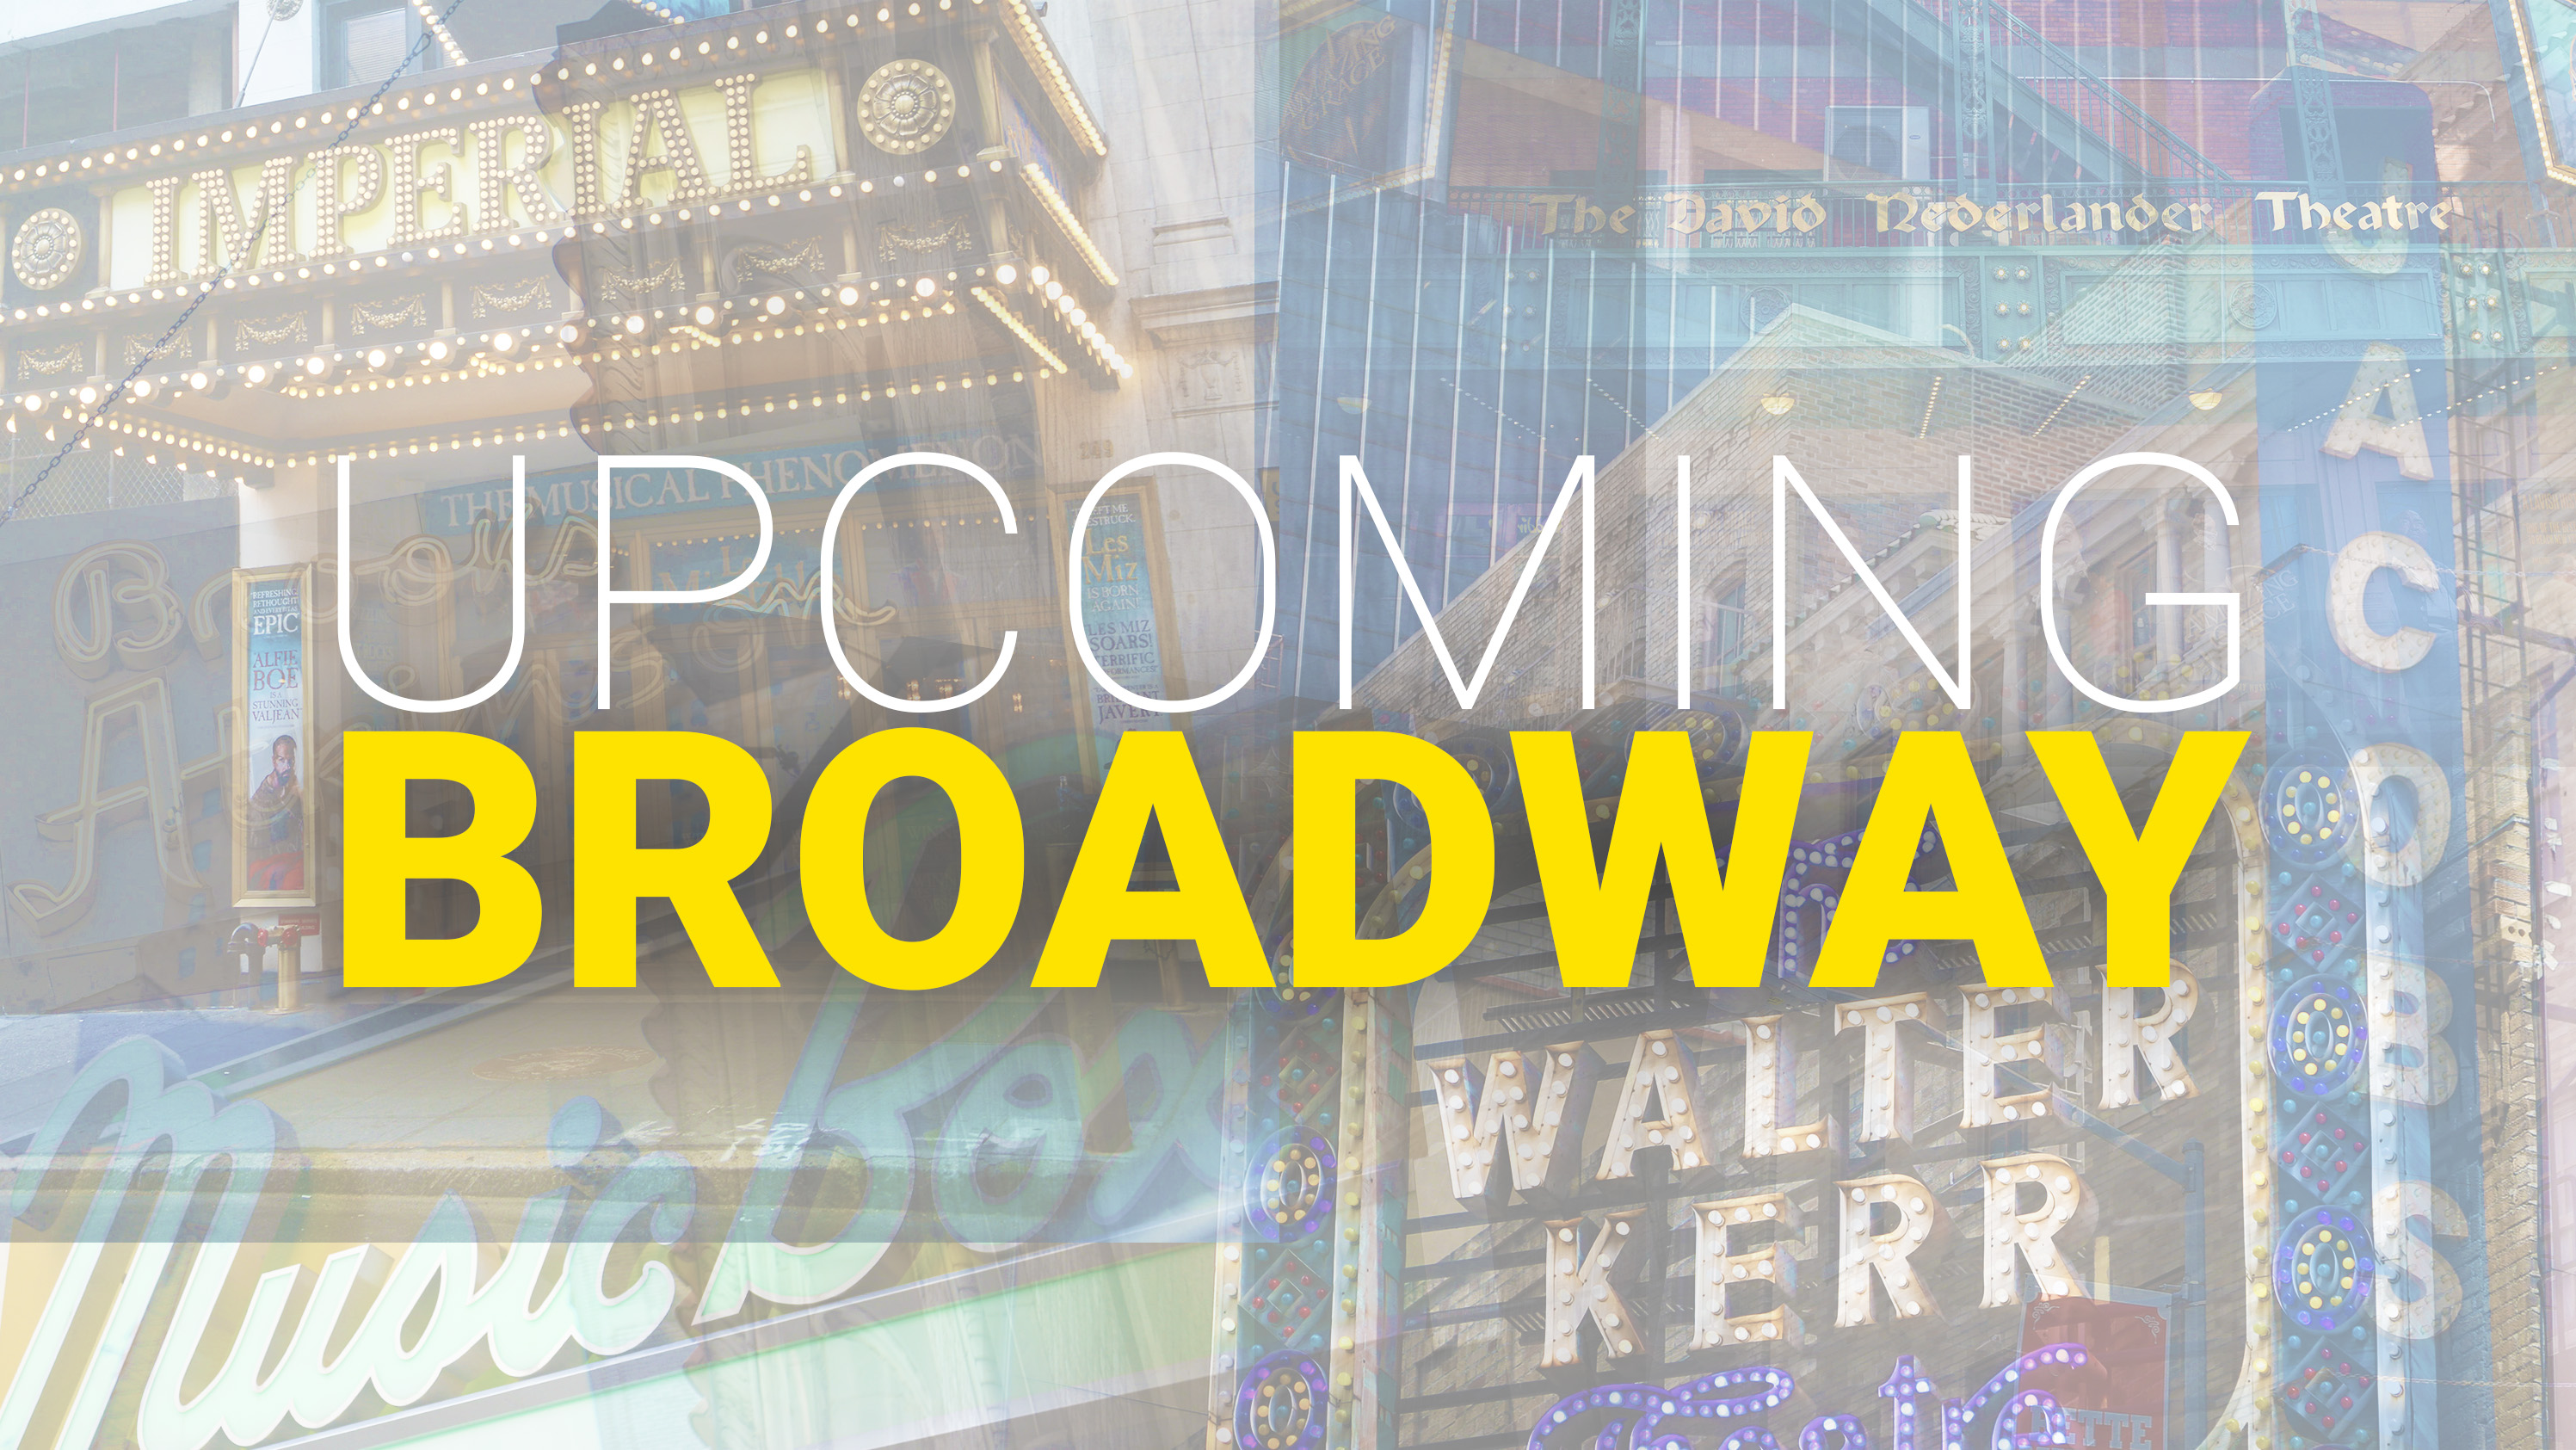 Broadway Shows New York City 2020 Schedule of Upcoming and Announced Broadway Shows | Playbill